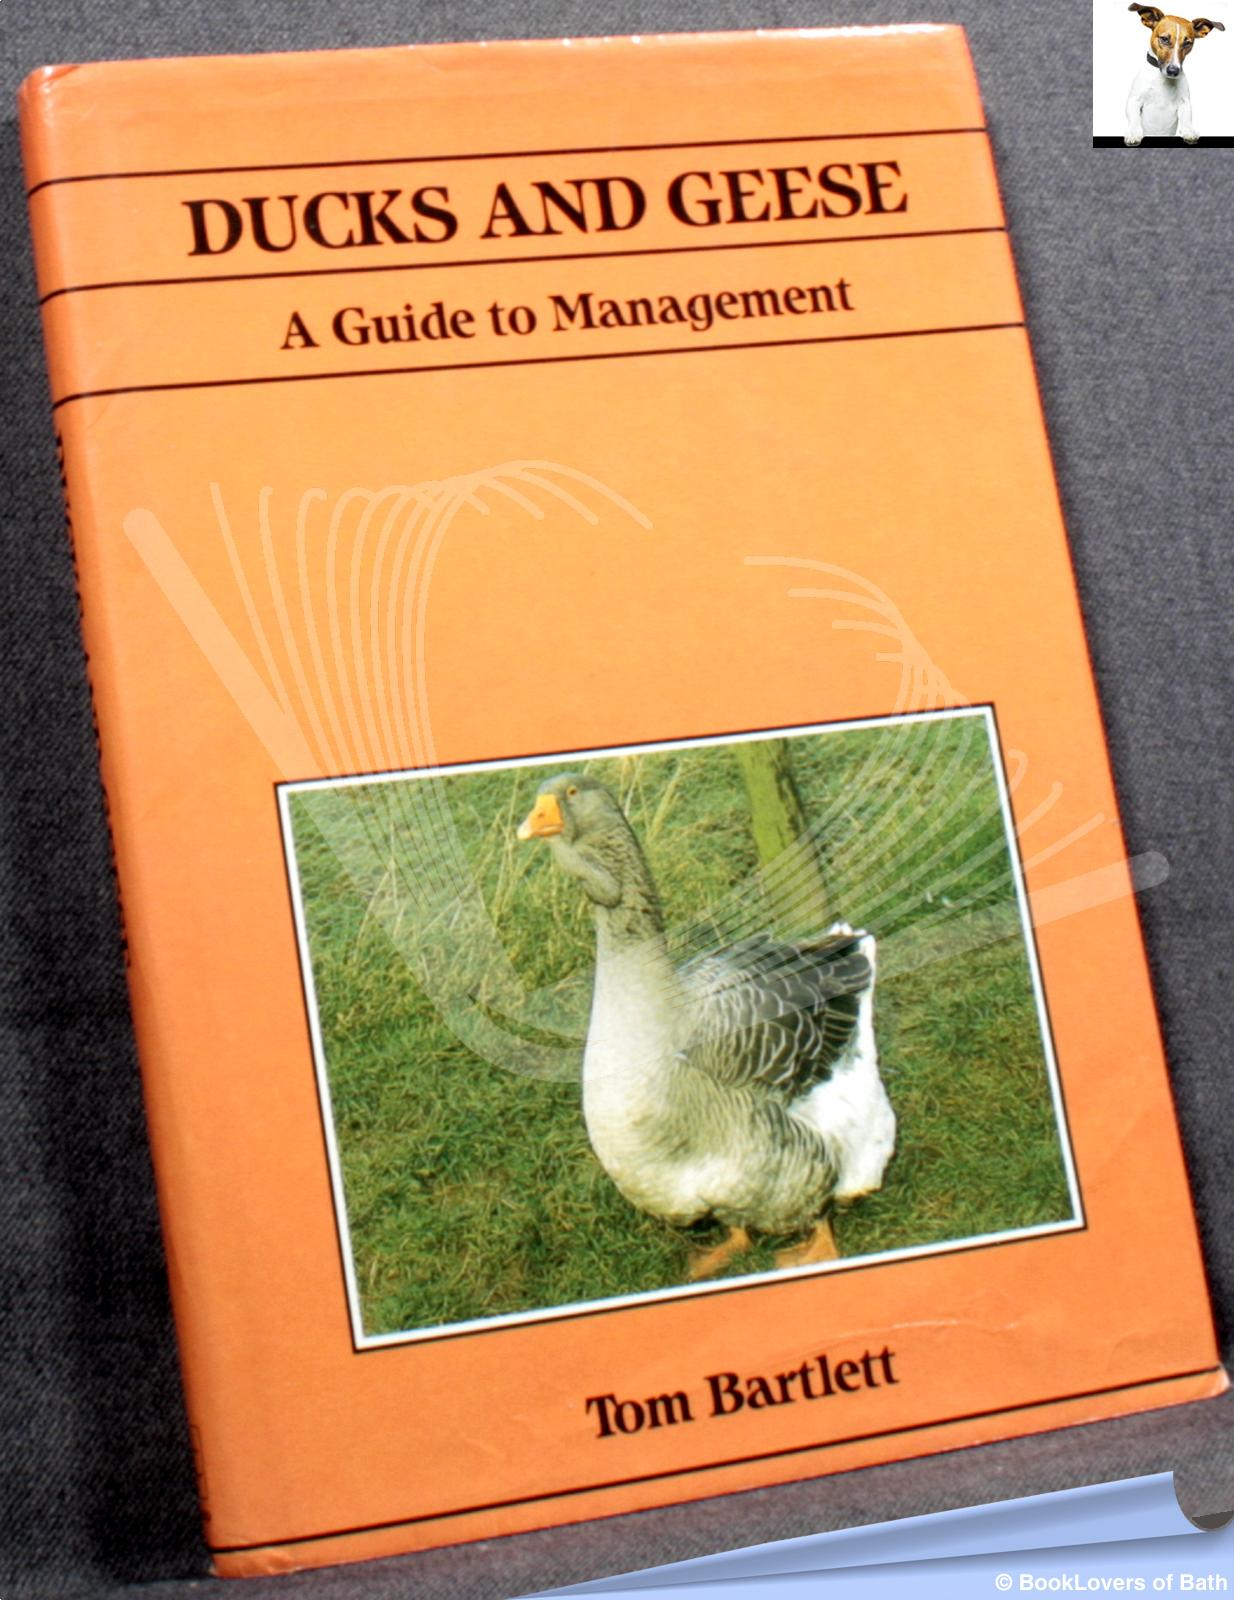 Ducks and Geese: A Guide to Management - Tom Bartlett